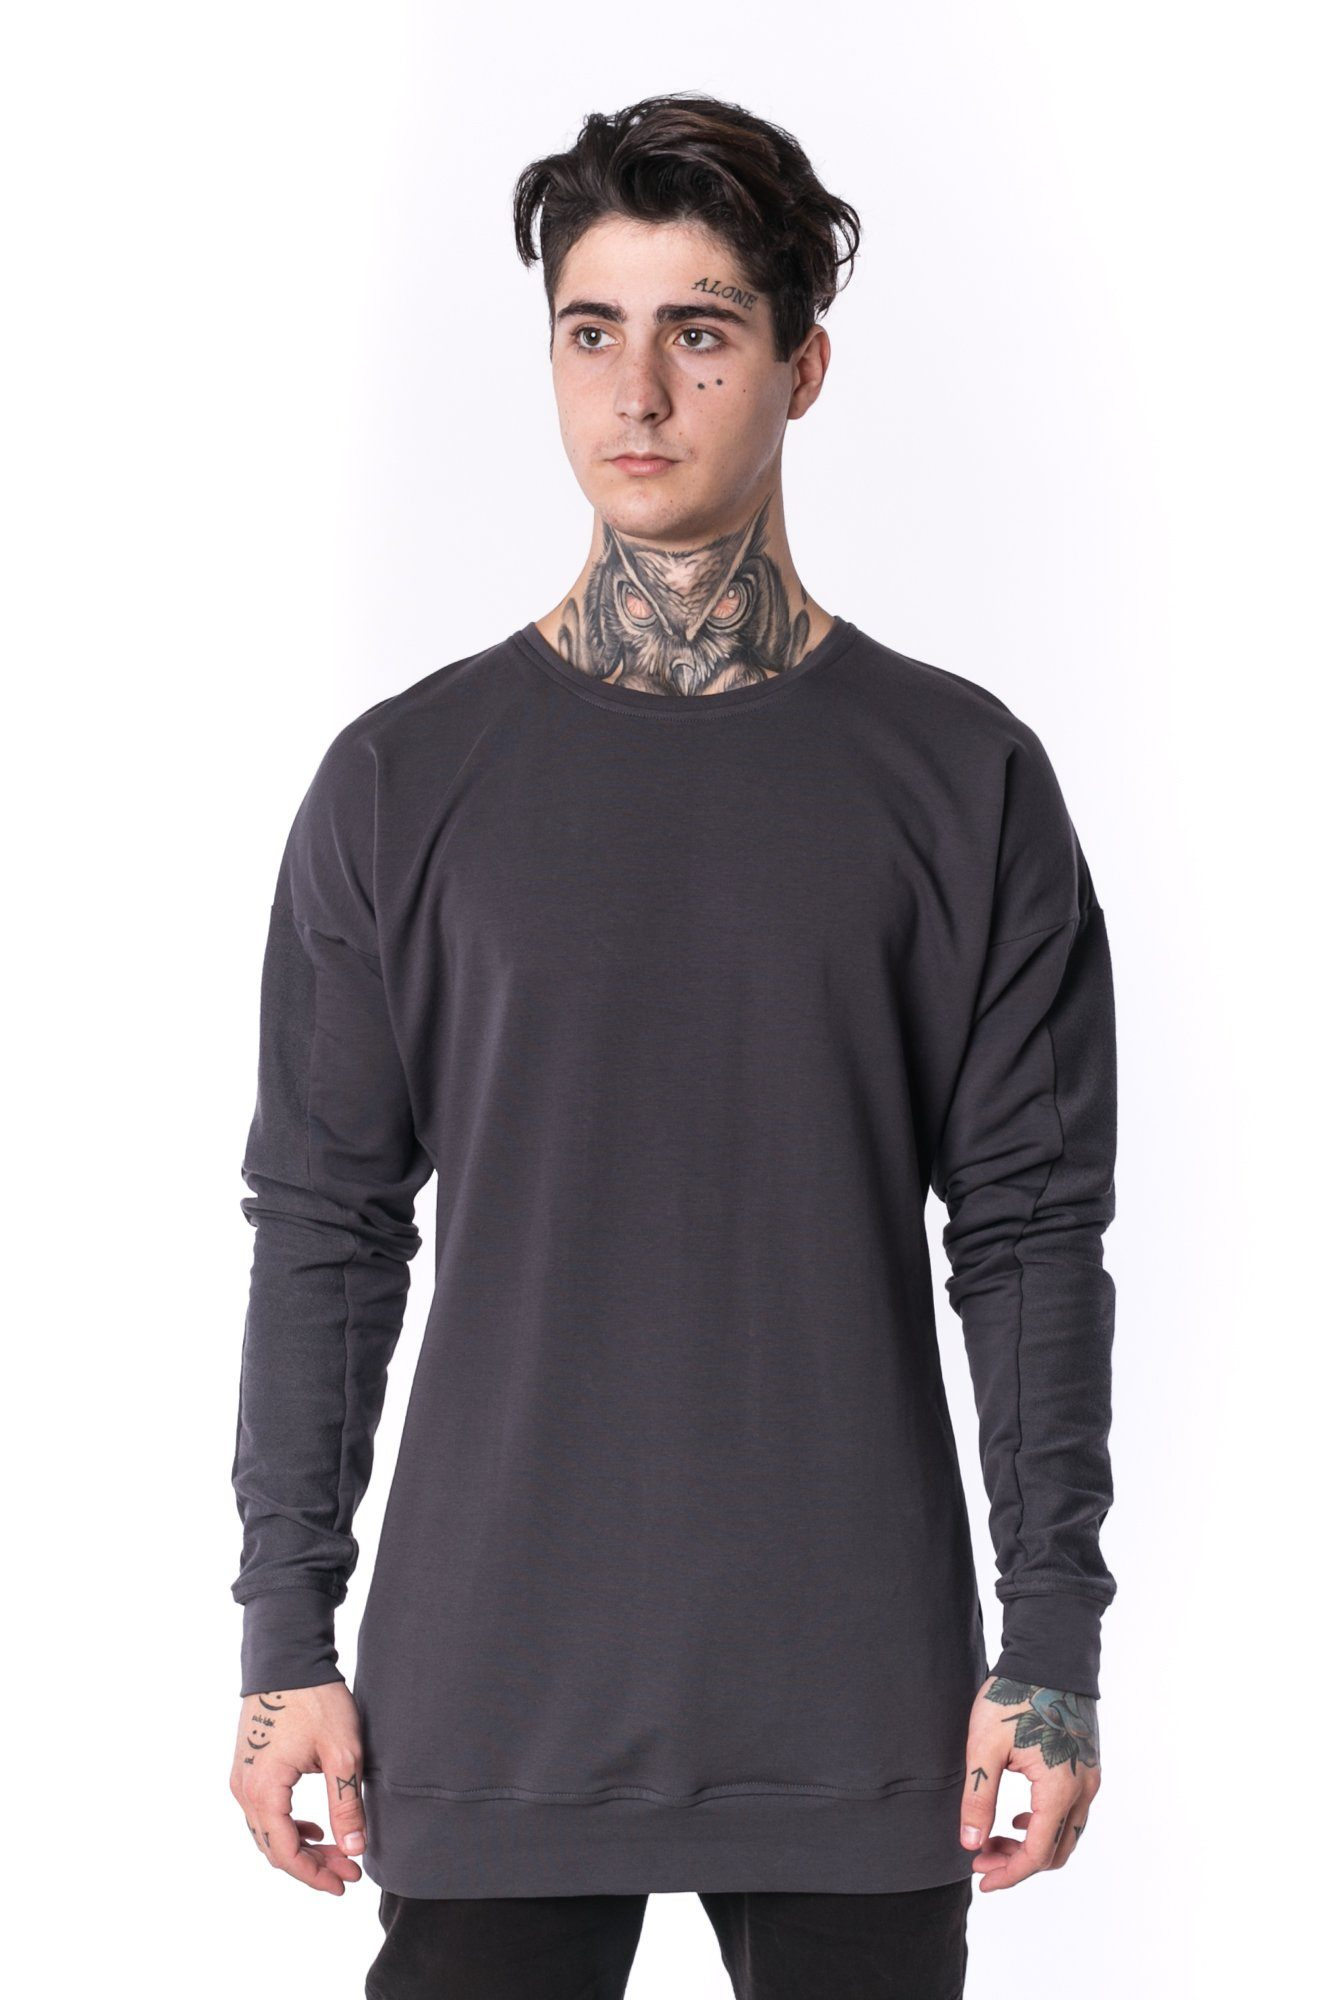 The Man Panelled Pullover Crewneck 17 // charcoal